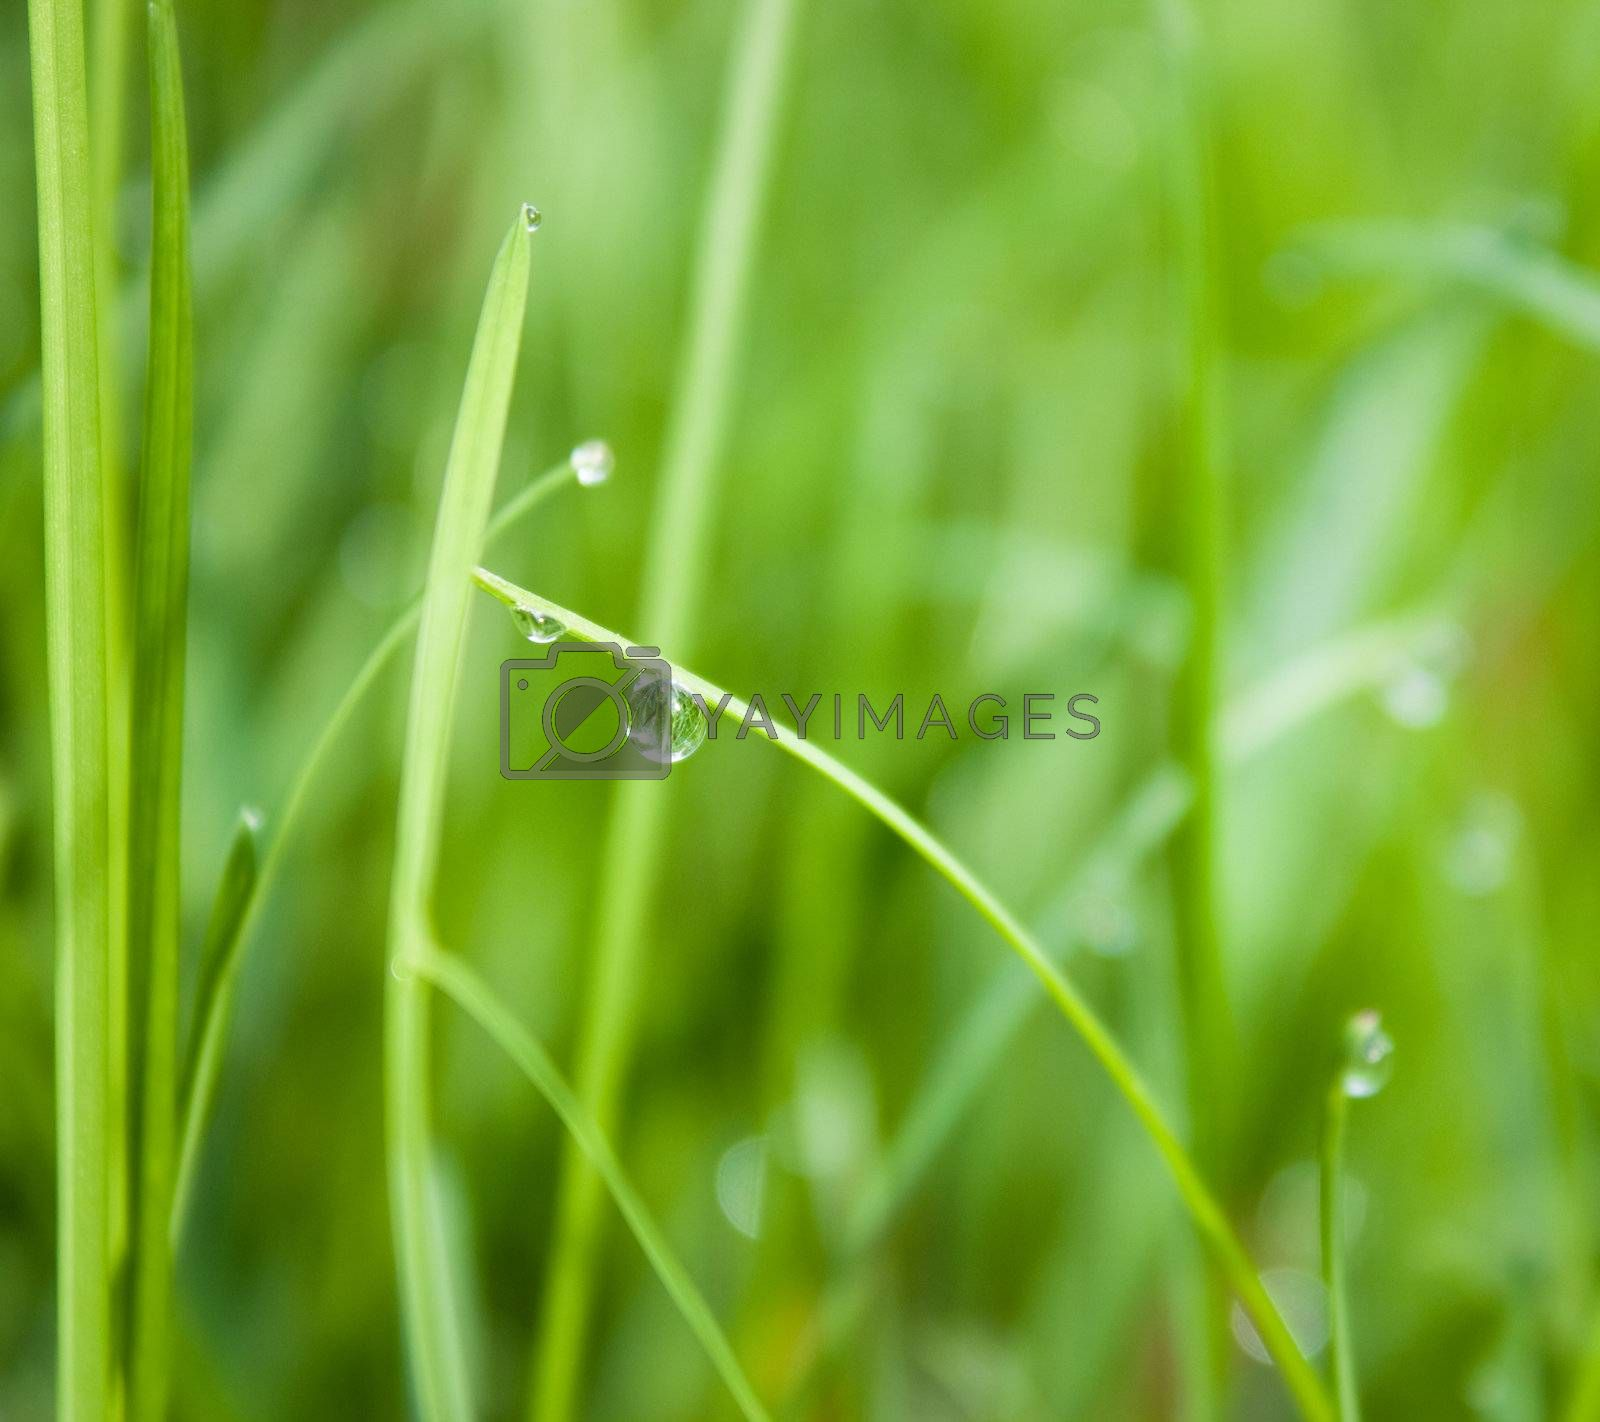 Water droplets on a grass, shallow dof